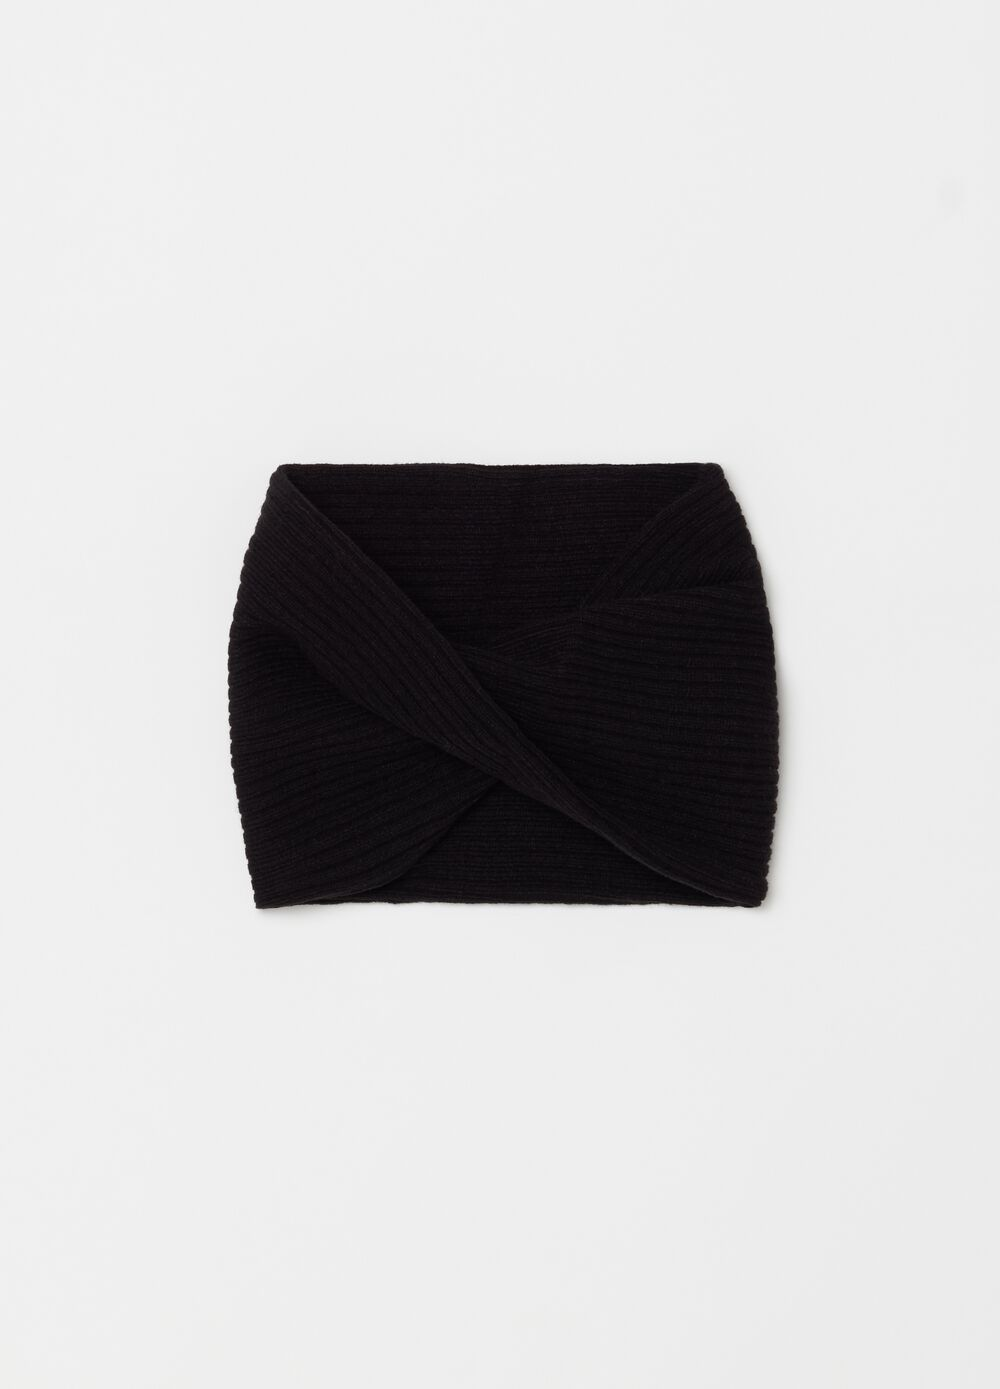 Narrow ribbed knitted neck warmer